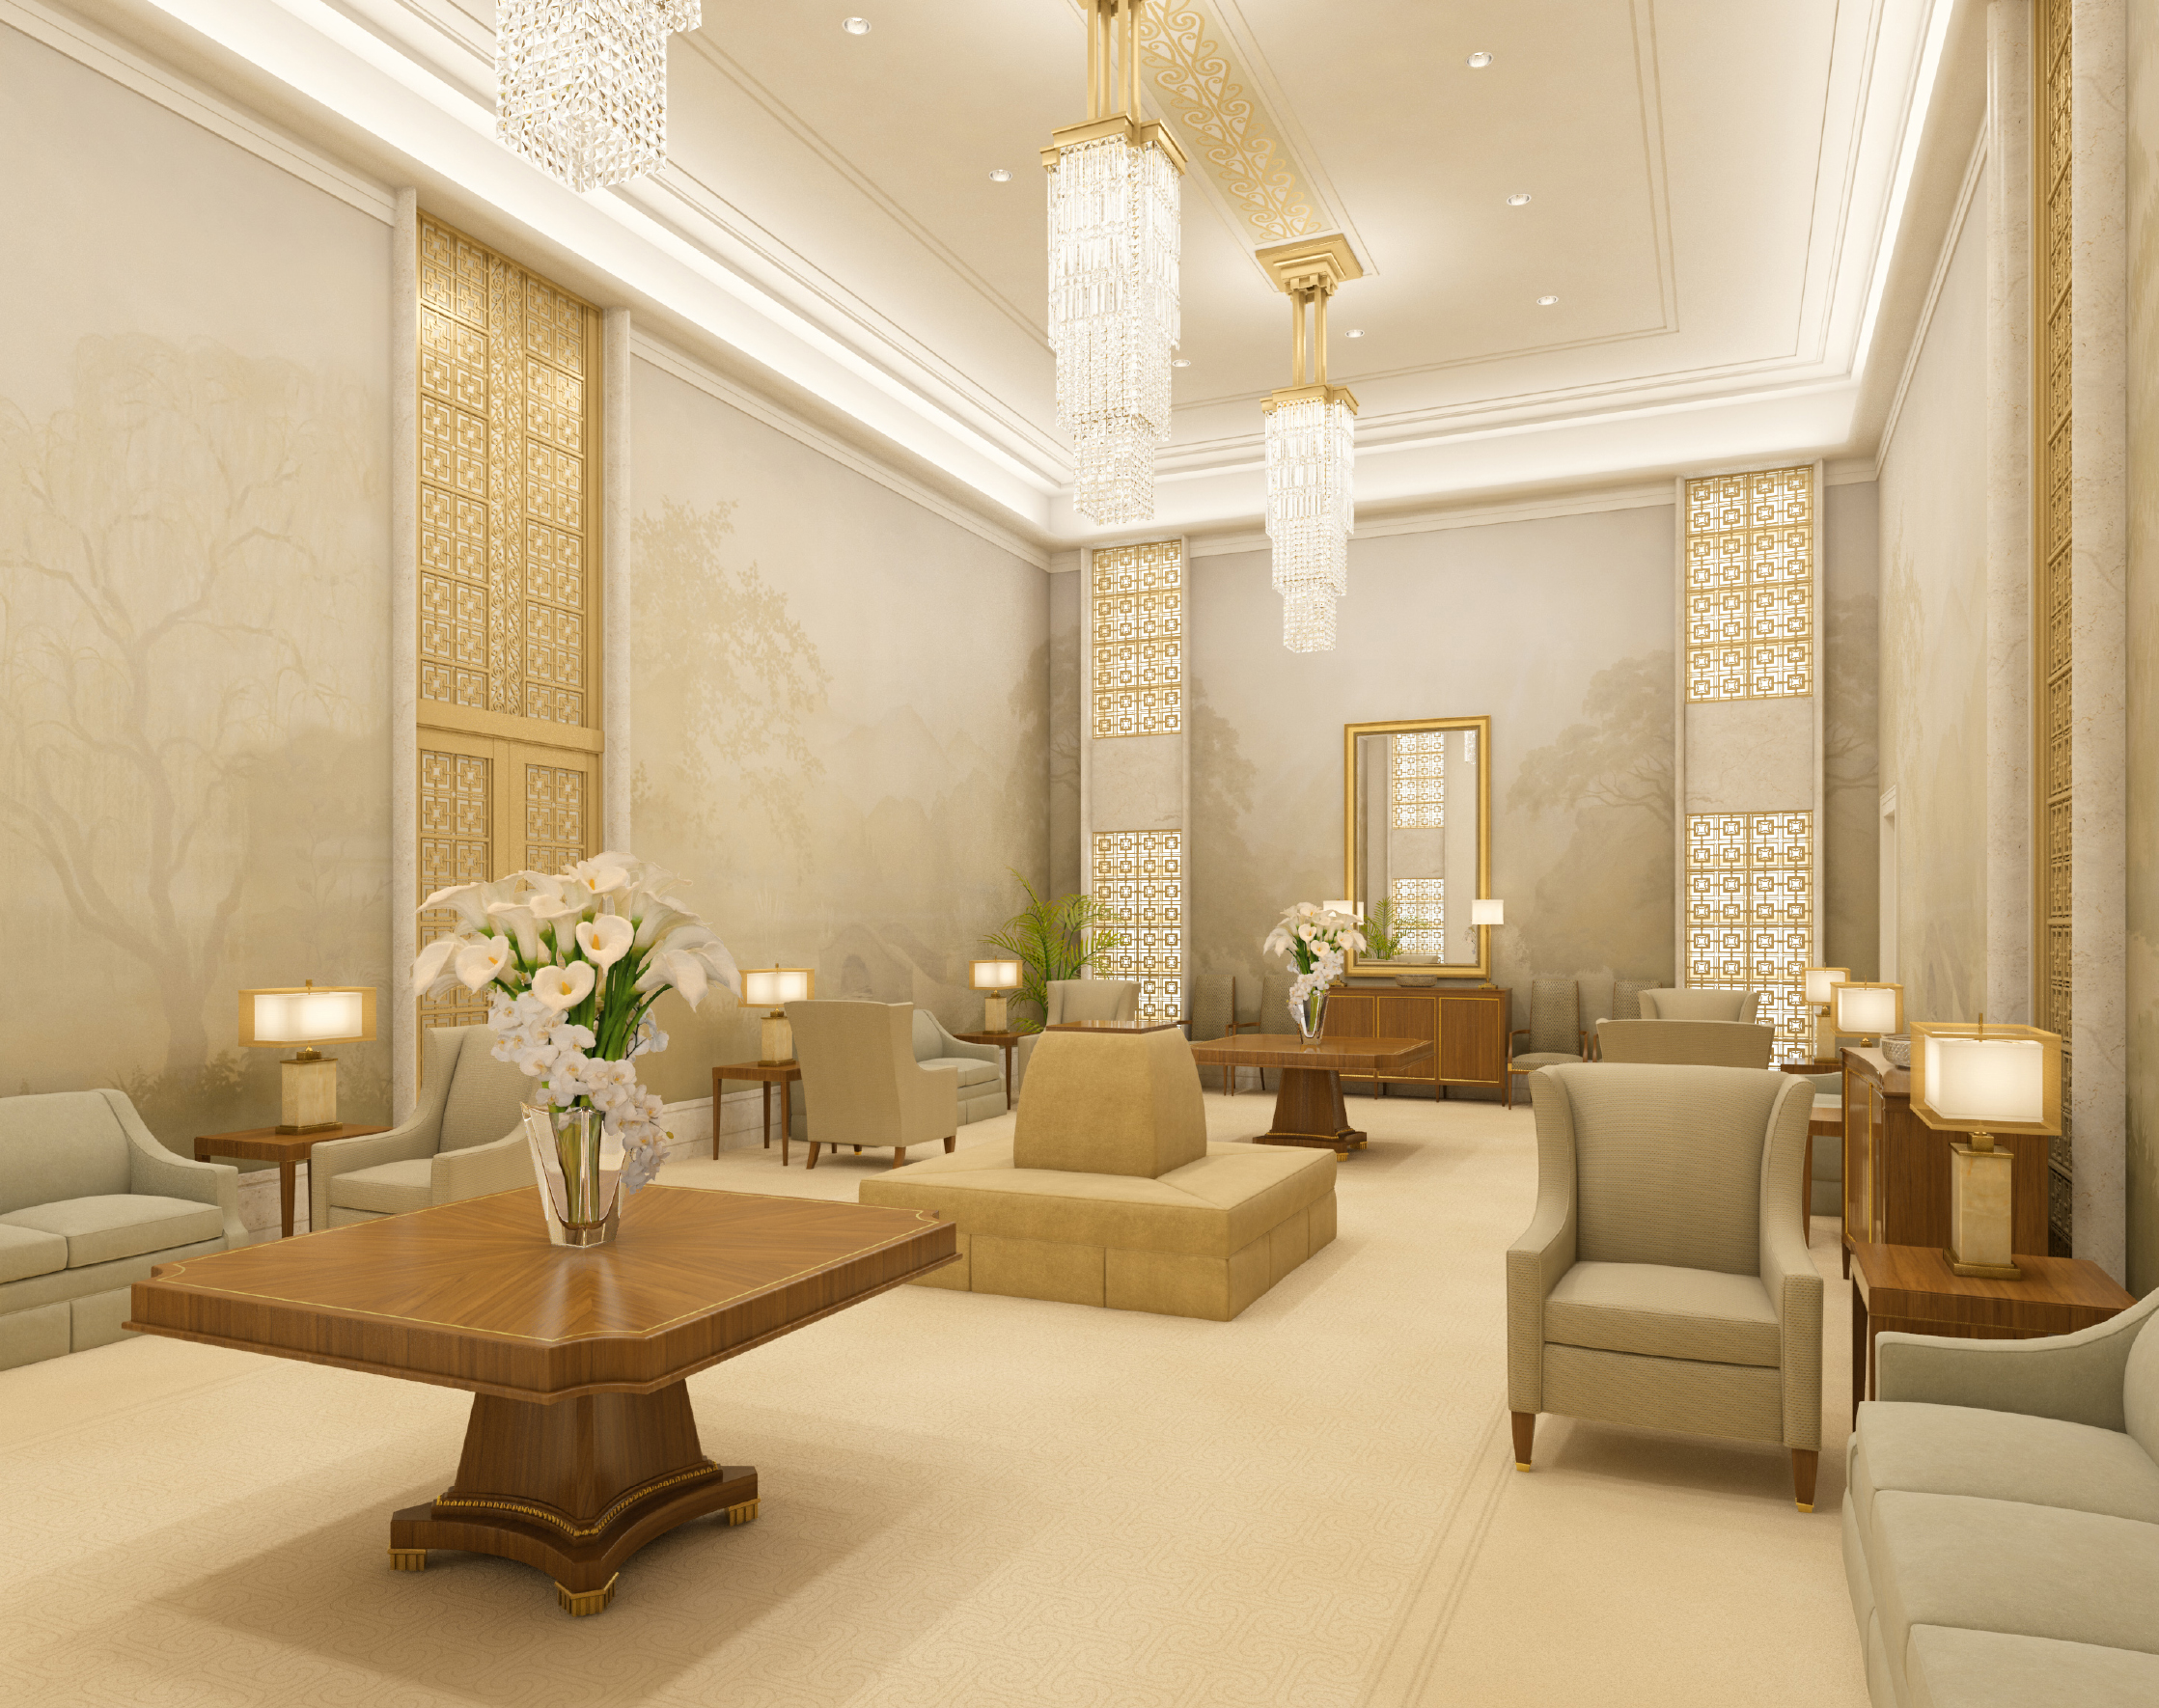 Rendering of Celestial Room in the Hamilton New Zealand Temple.